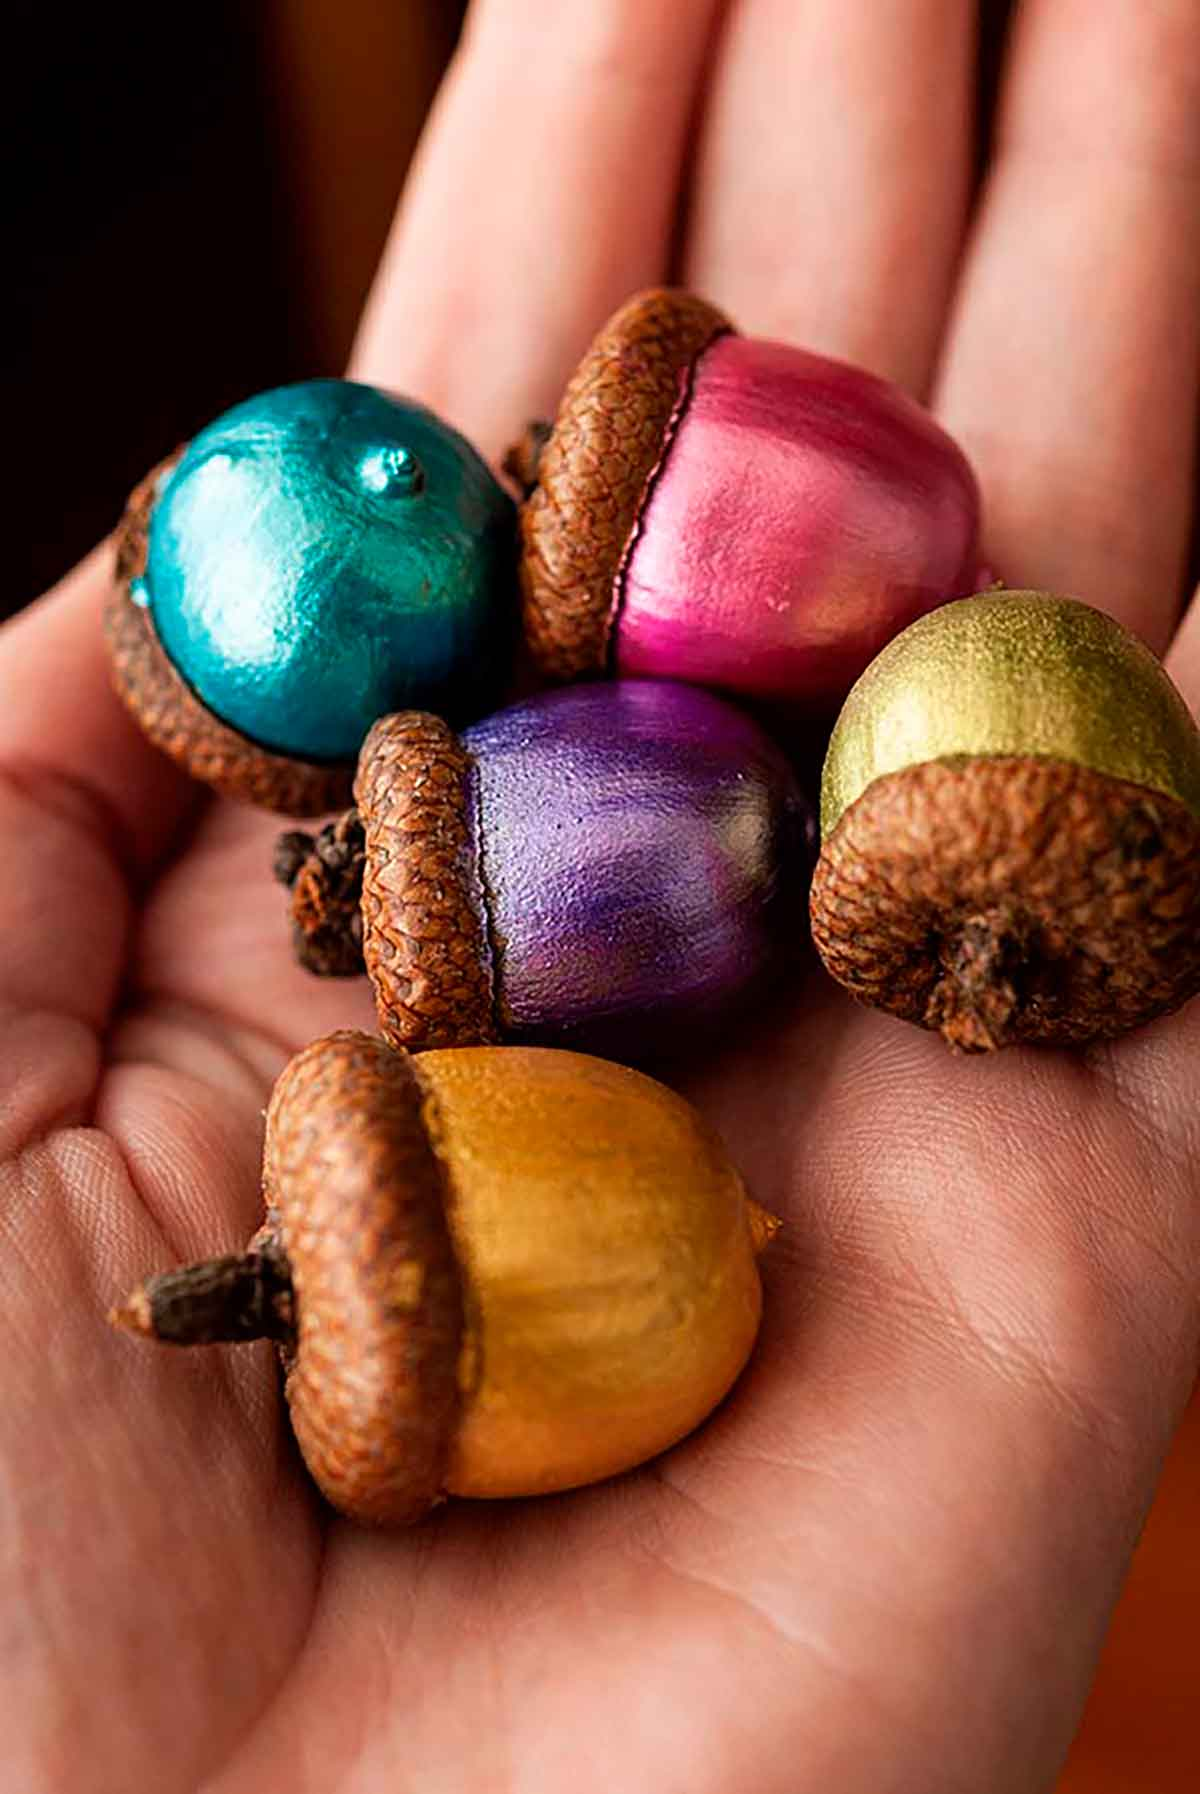 A hand holding 5 painted acorns.